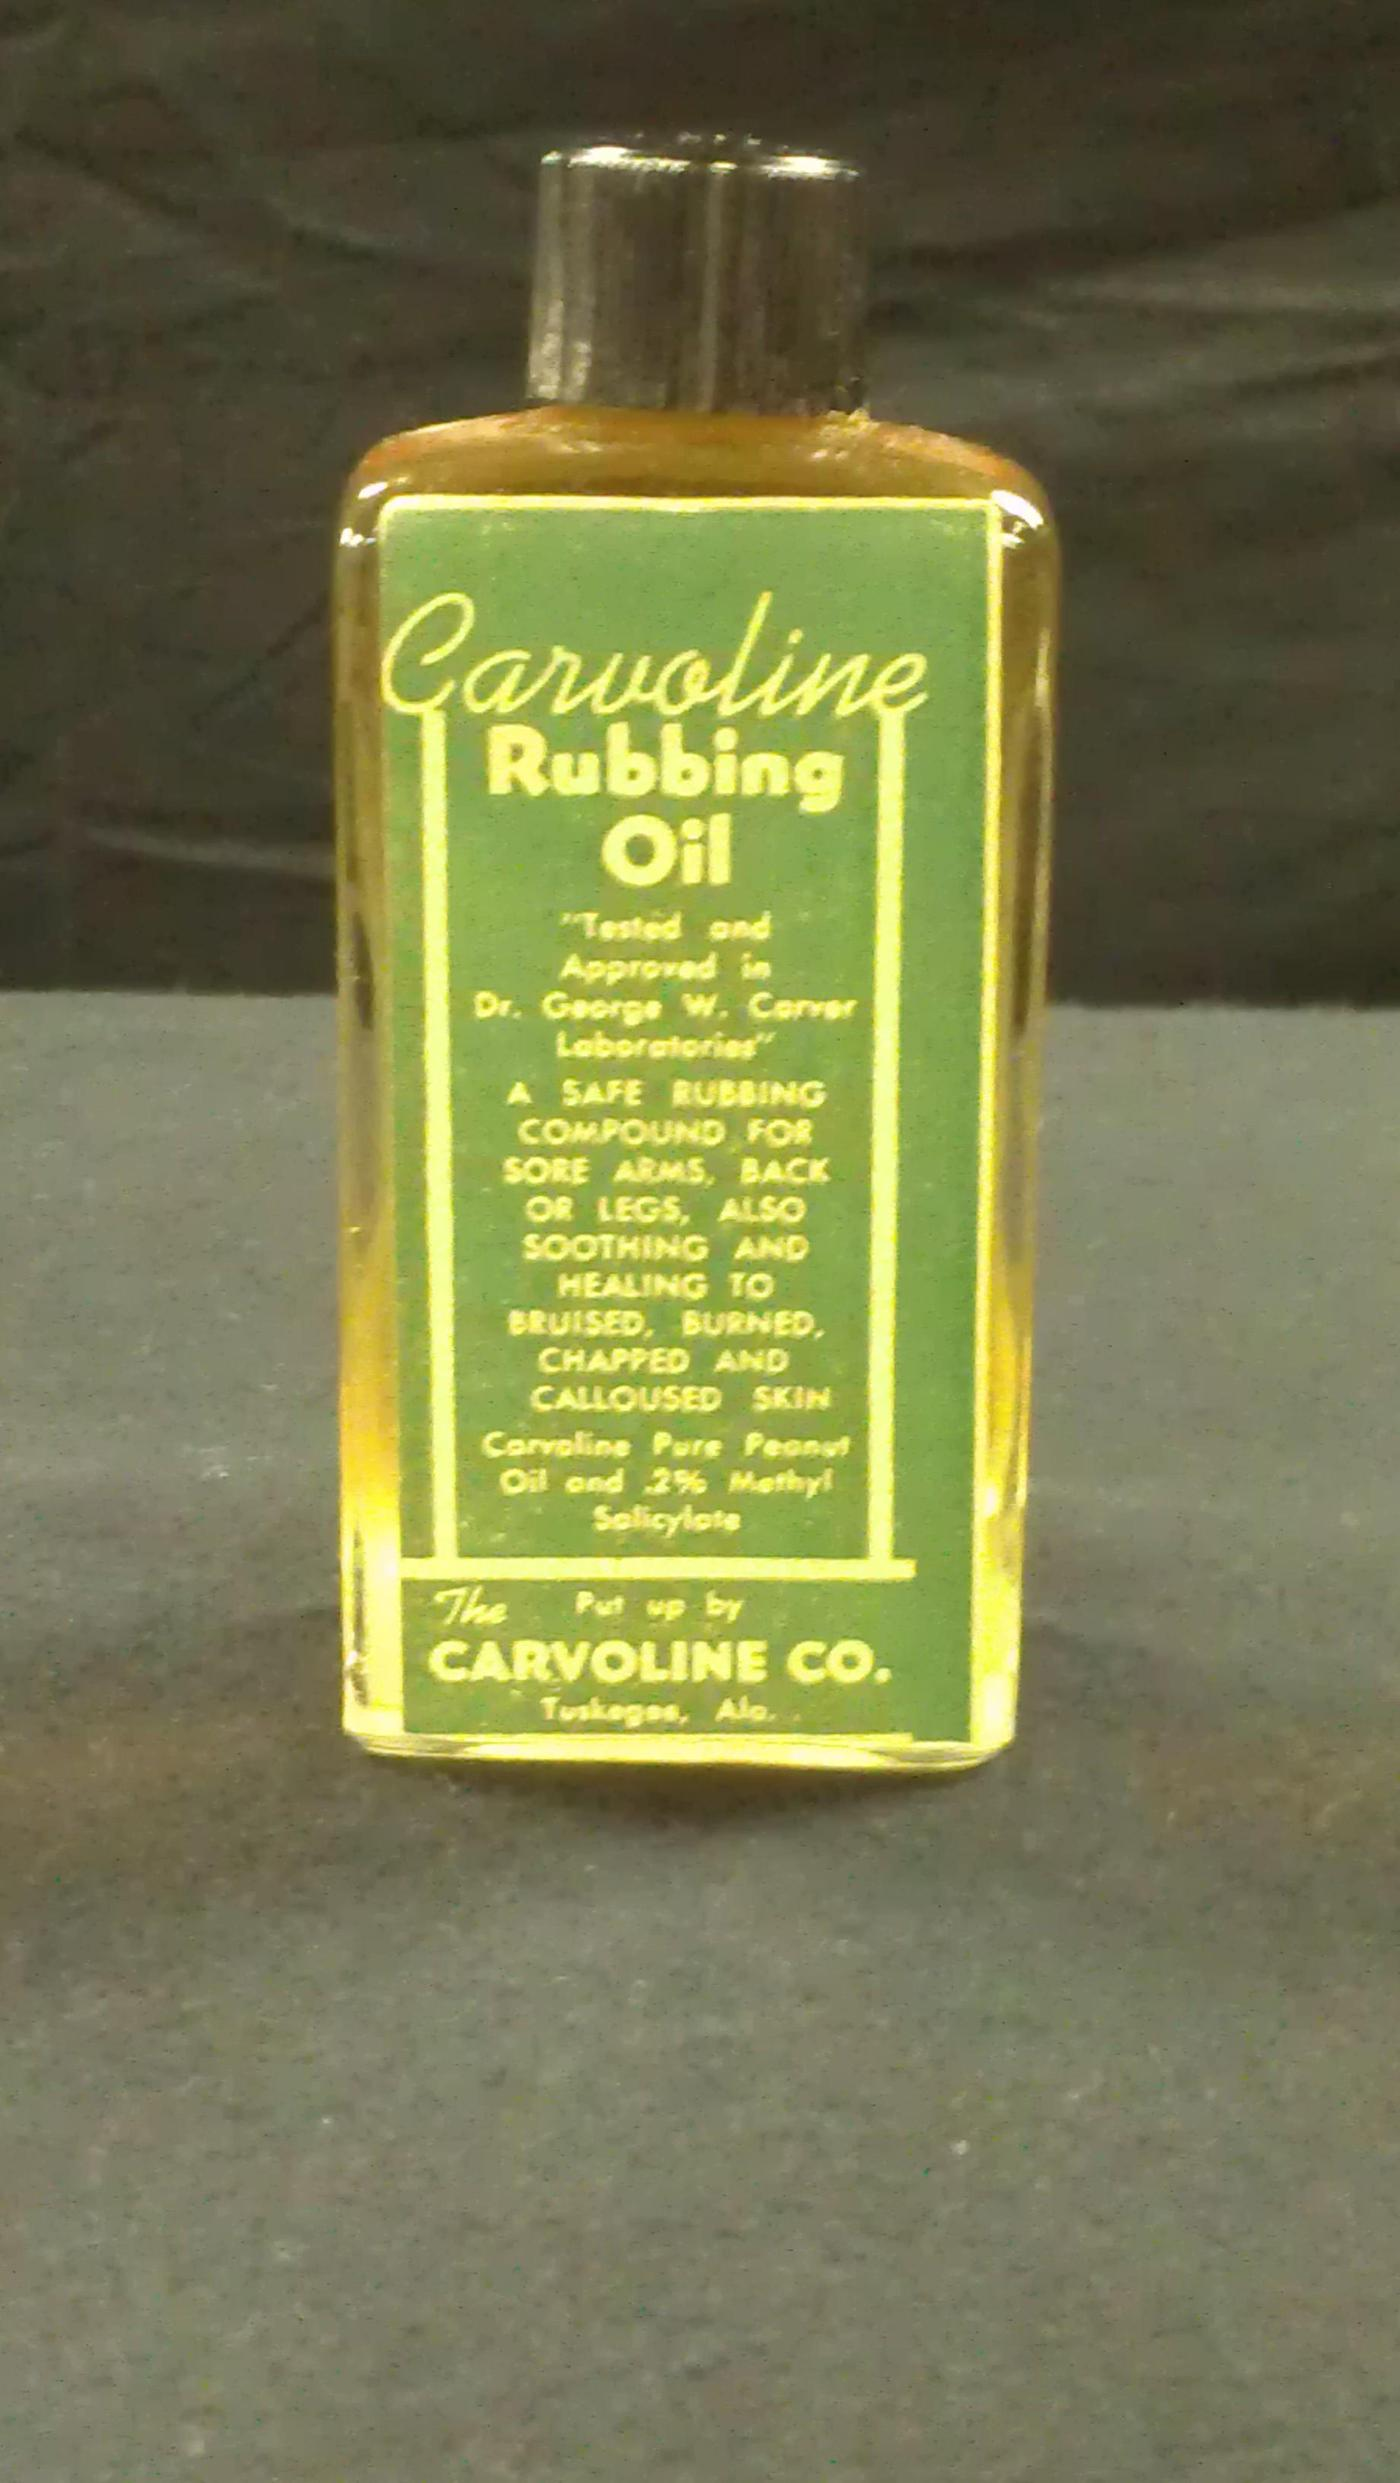 Carver's Peanut OilHundreds flocked to Tuskegee for polio treatment using George W. Carver's peanut oil